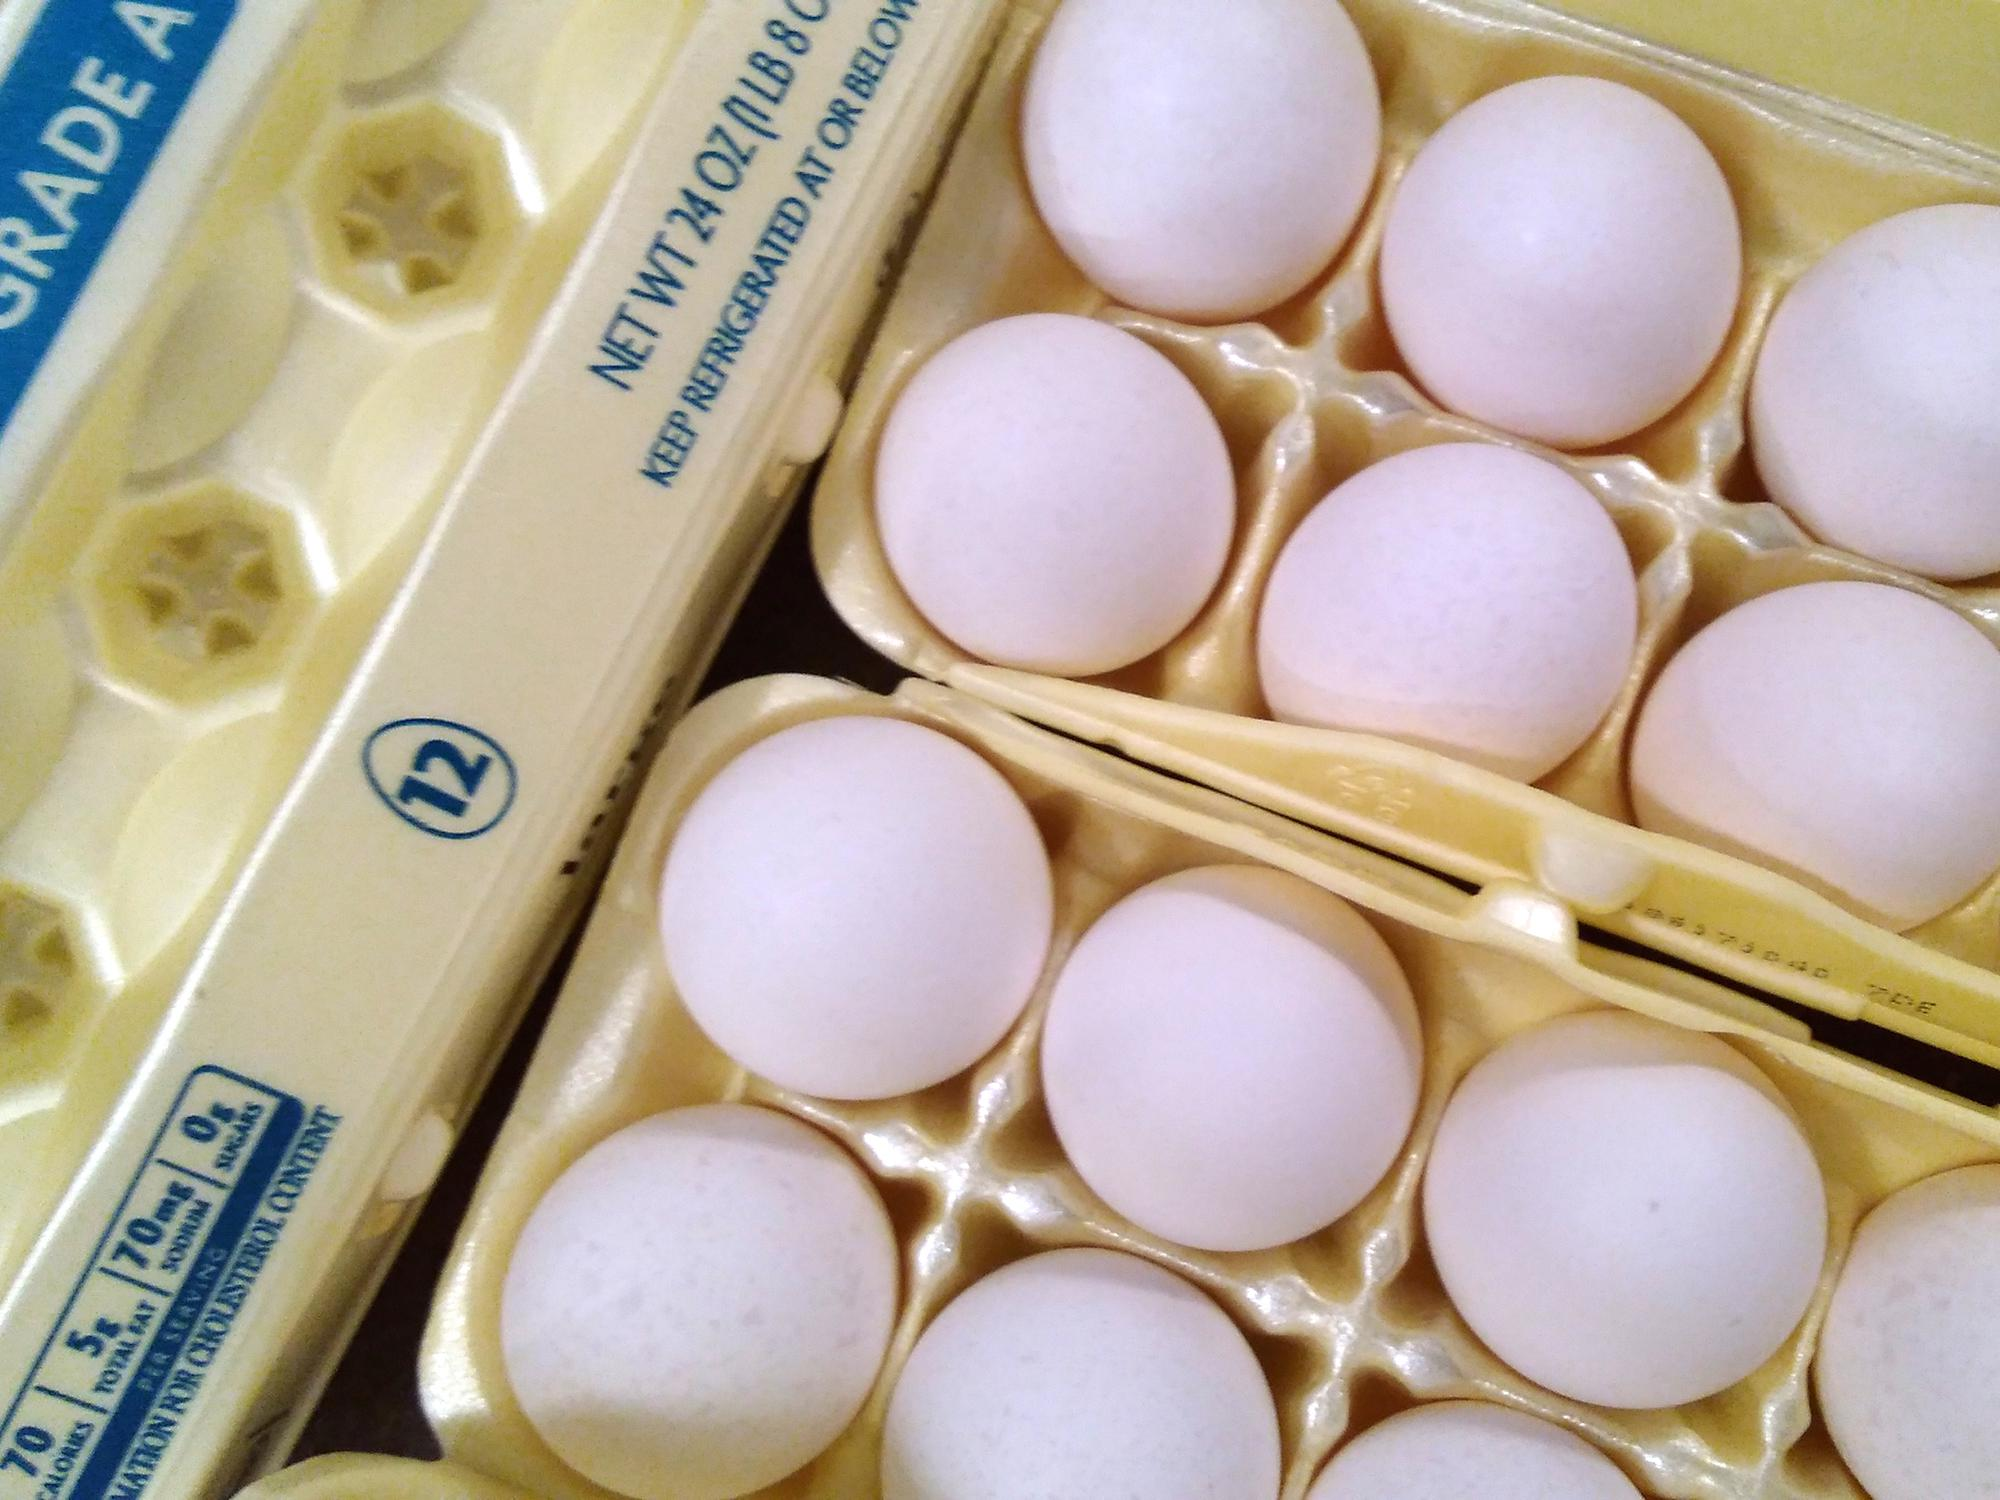 Hen flock inventories grew after the poultry industry recovered from the 2015 avian influenza outbreak, increasing the number of eggs on the market and driving down the price. (Photo by MSU Extension Service/Kevin Hudson)